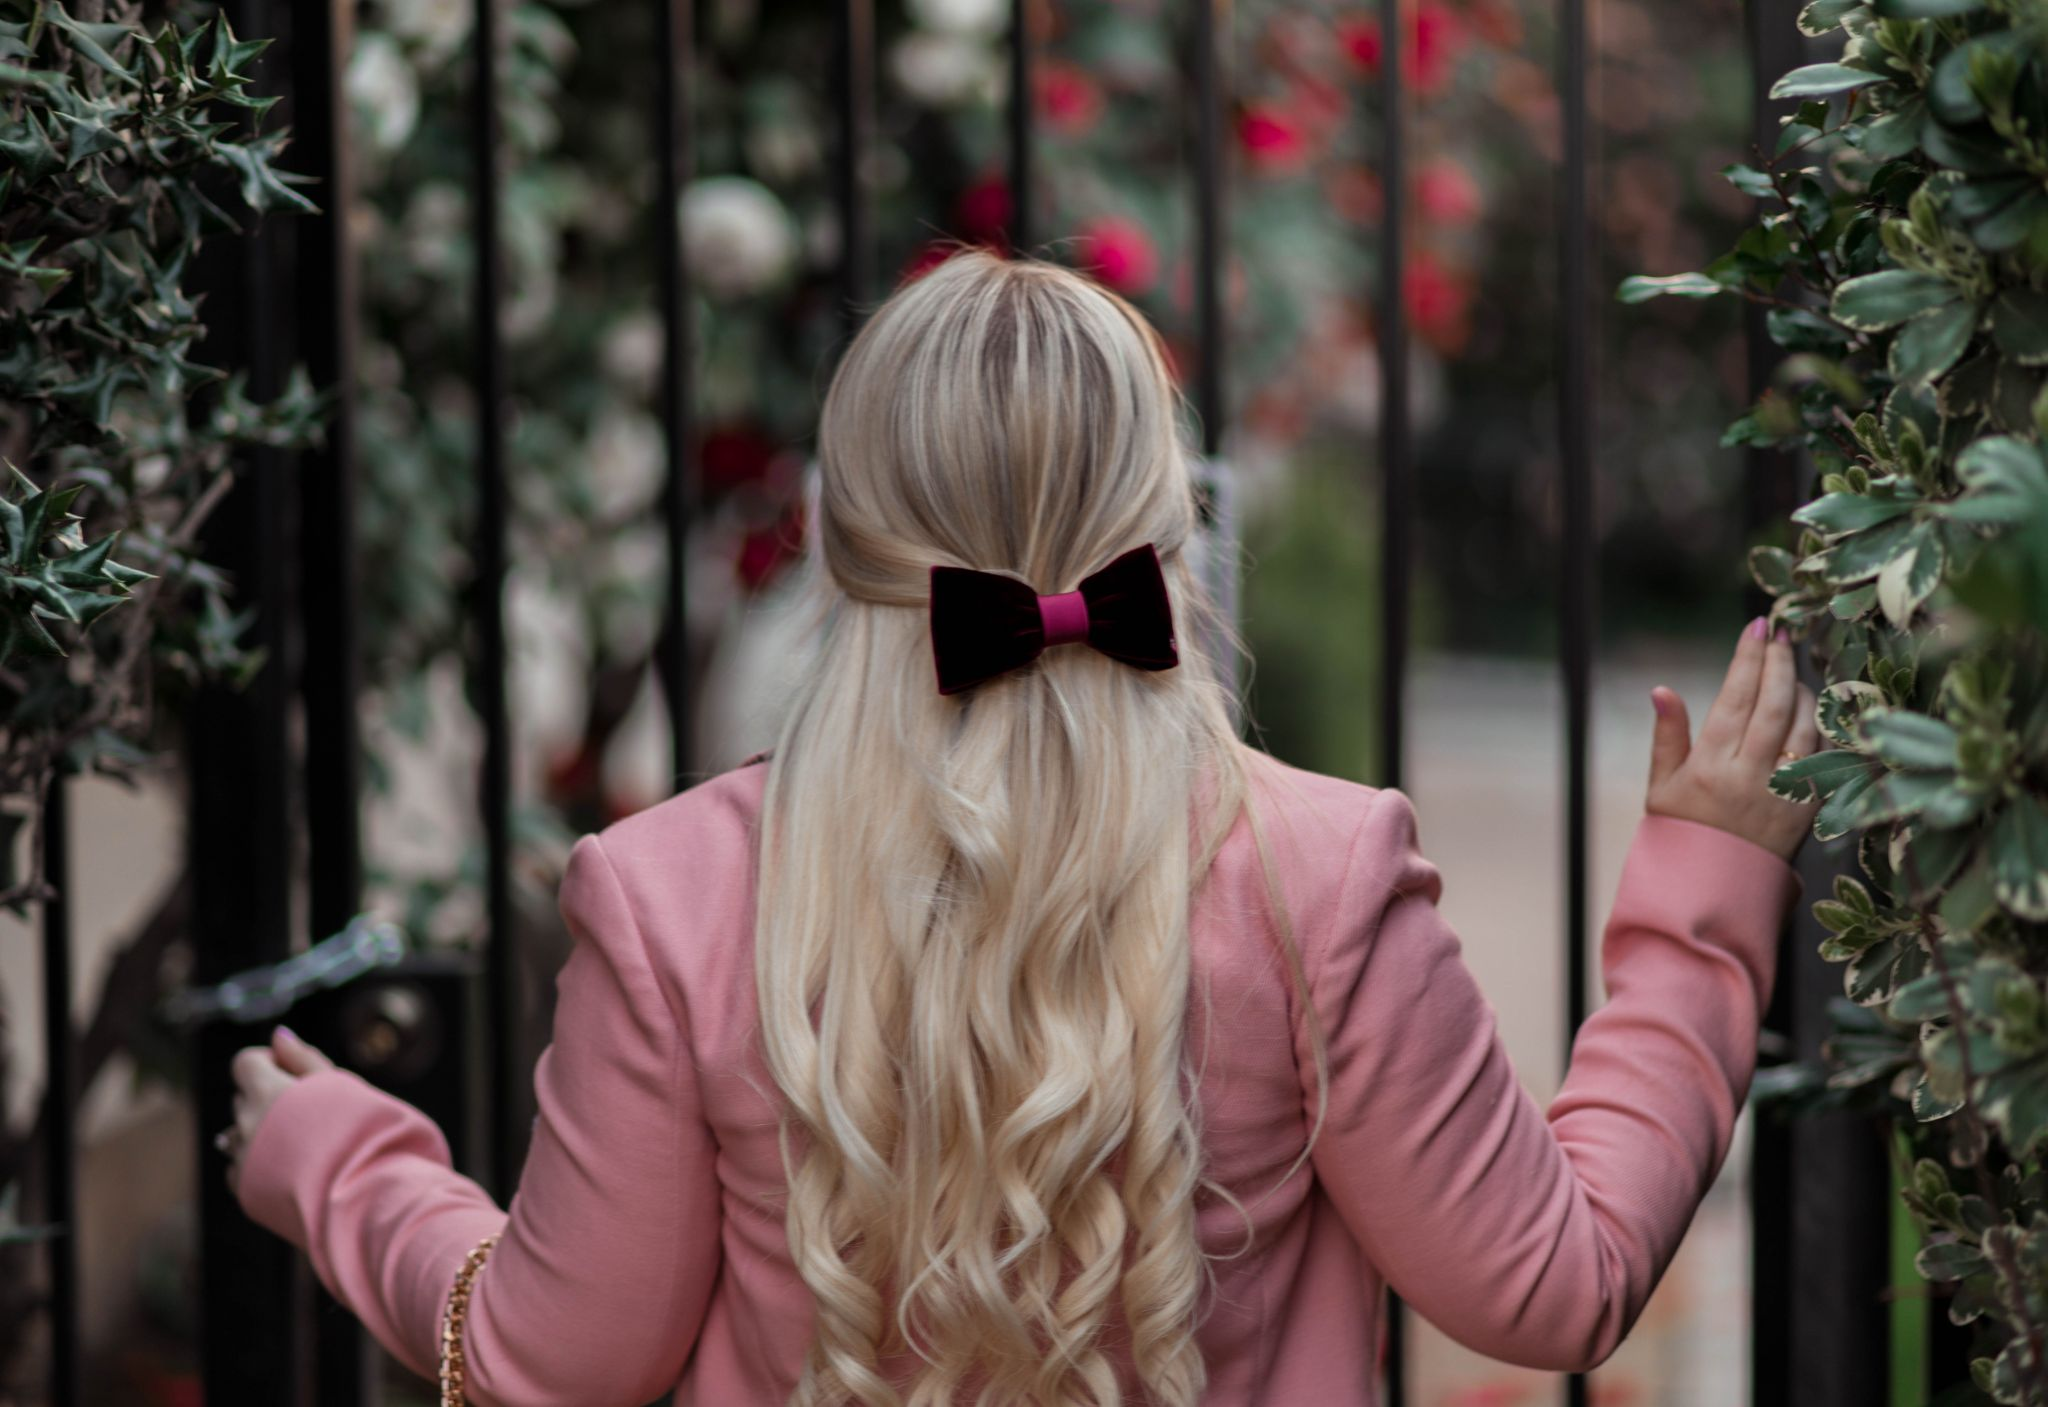 Feminine Fashion Blogger Elizabeth Hugen of Lizzie in Lace shares her girly hair accessories collection including this velvet hair bow